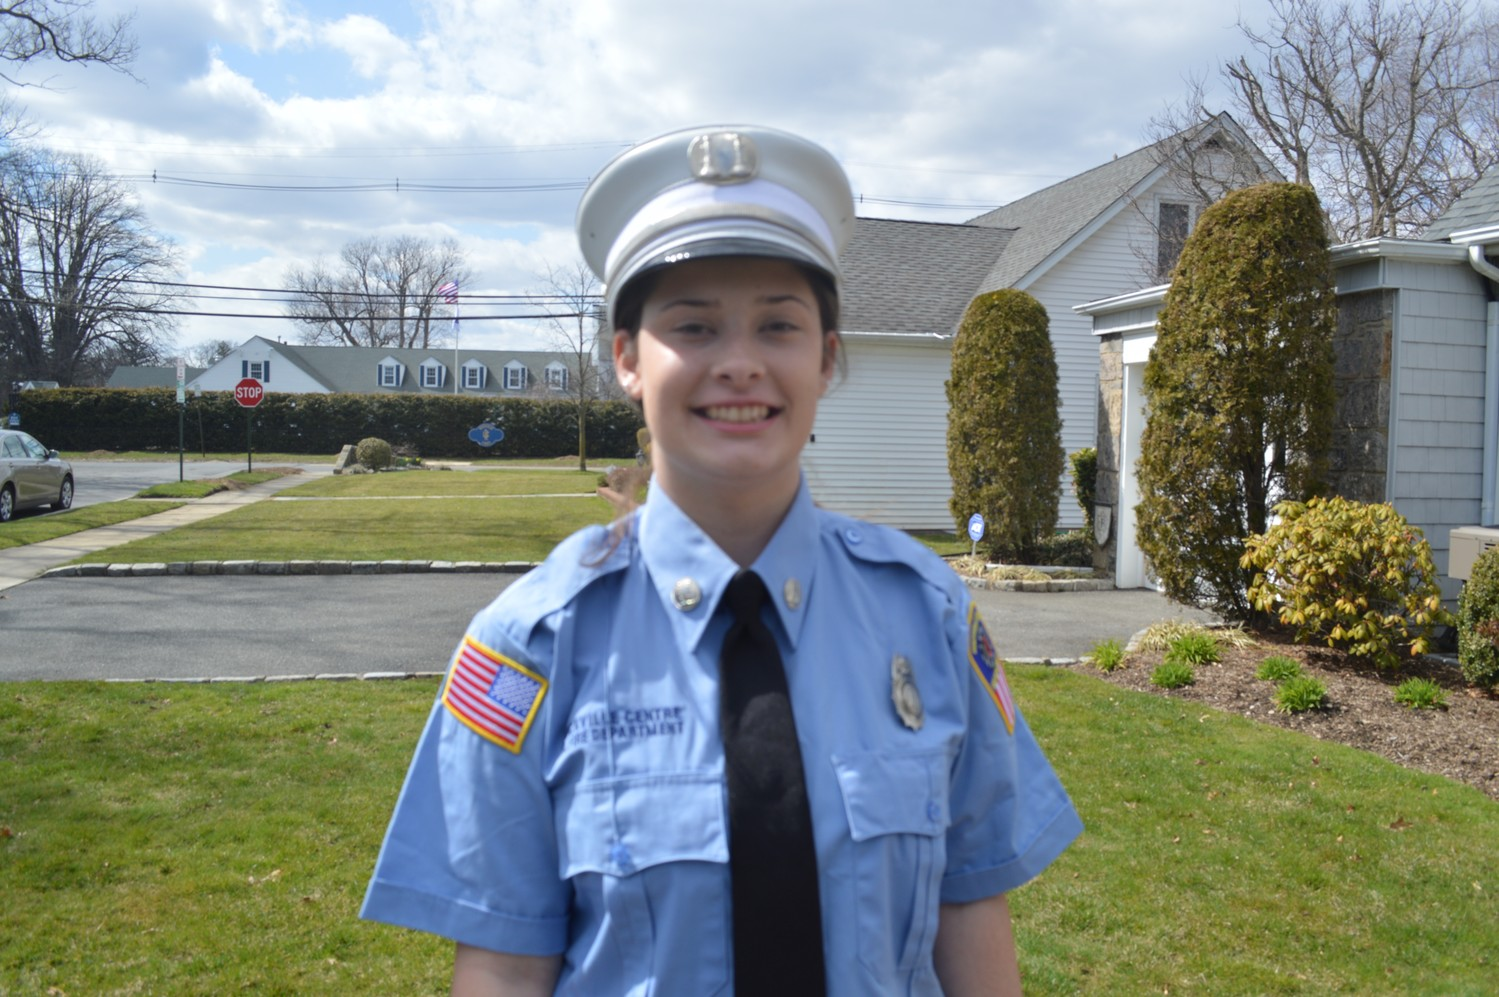 As captain of the Rockville Centre Junior Department, Erika Brancato is in charge of keeping members interested enough to transition to full-fledged firefighters.